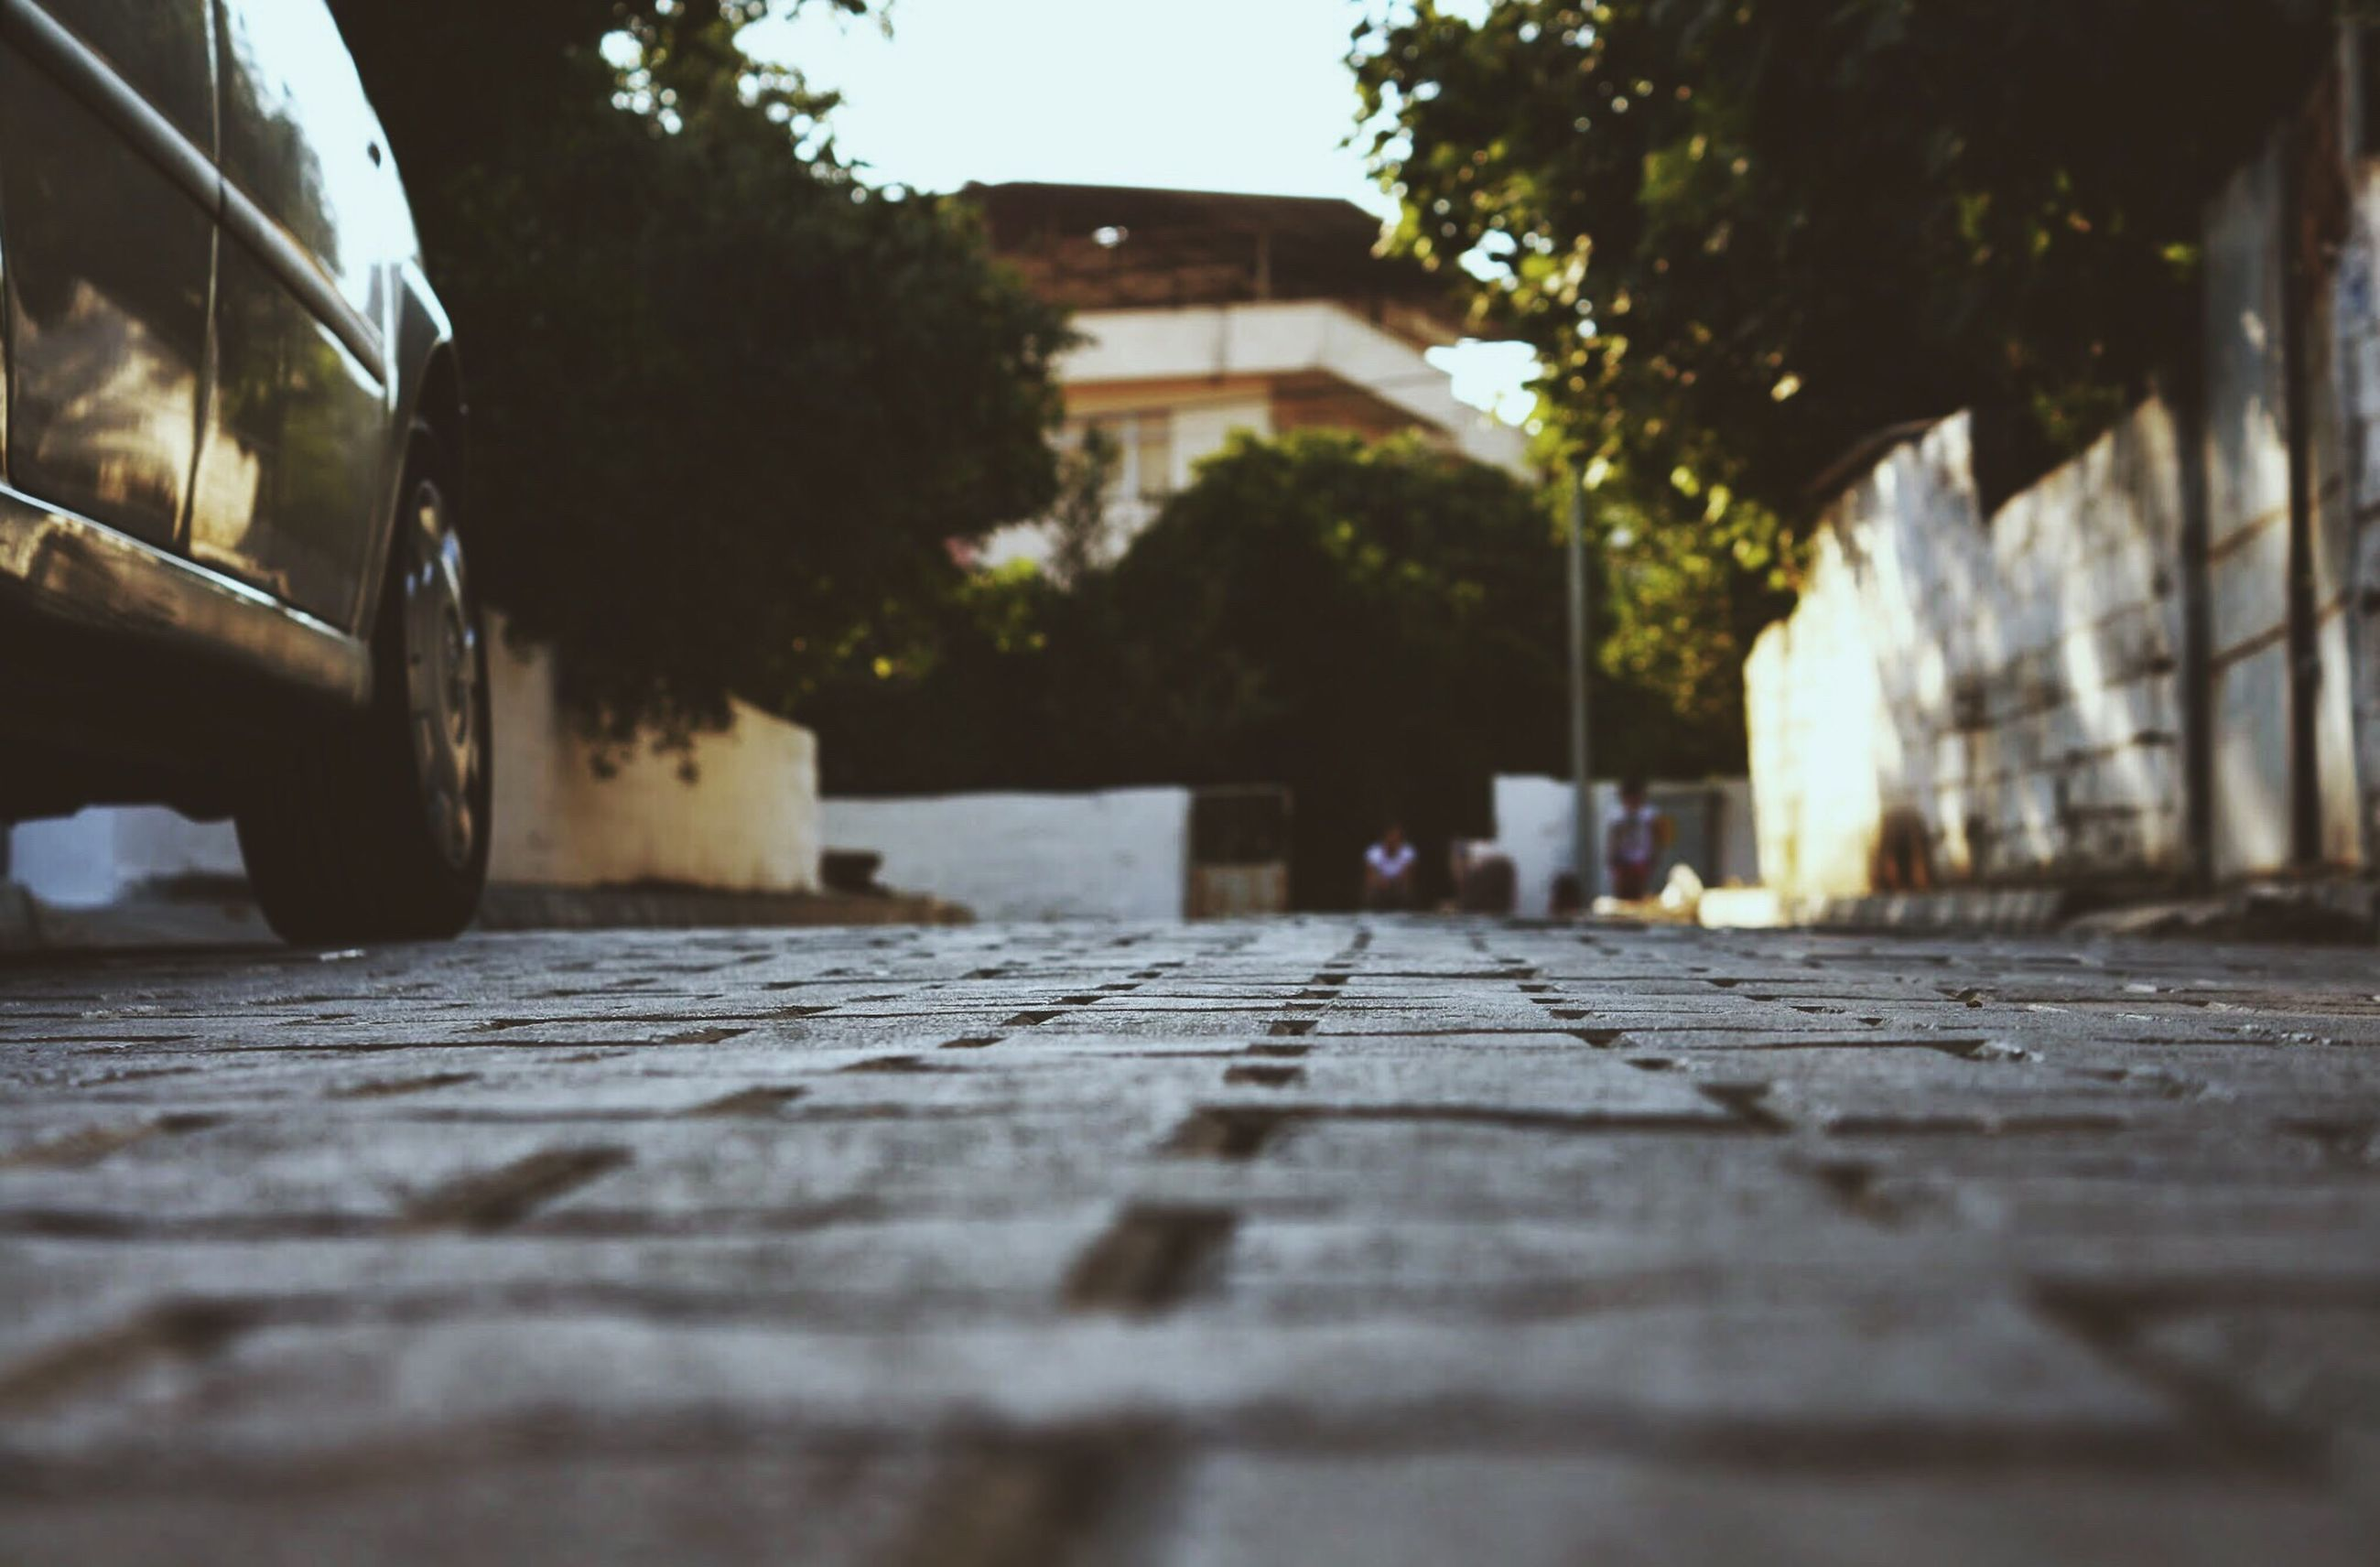 building exterior, architecture, built structure, surface level, the way forward, selective focus, tree, street, house, city, residential structure, diminishing perspective, day, sunlight, cobblestone, outdoors, residential building, focus on background, walkway, building